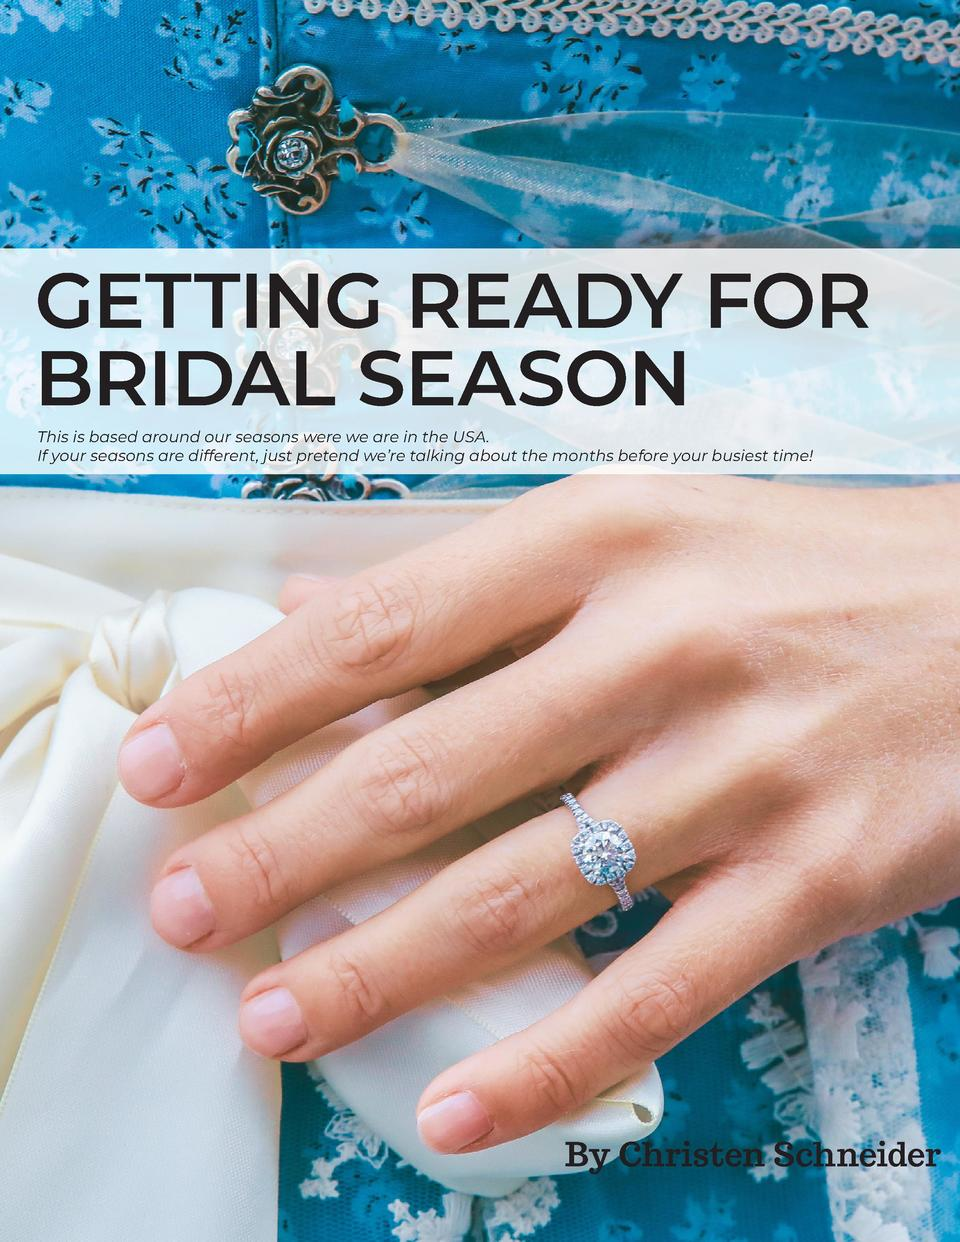 GETTING READY FOR BRIDAL SEASON This is based around our seasons were we are in the USA. If your seasons are different, ju...